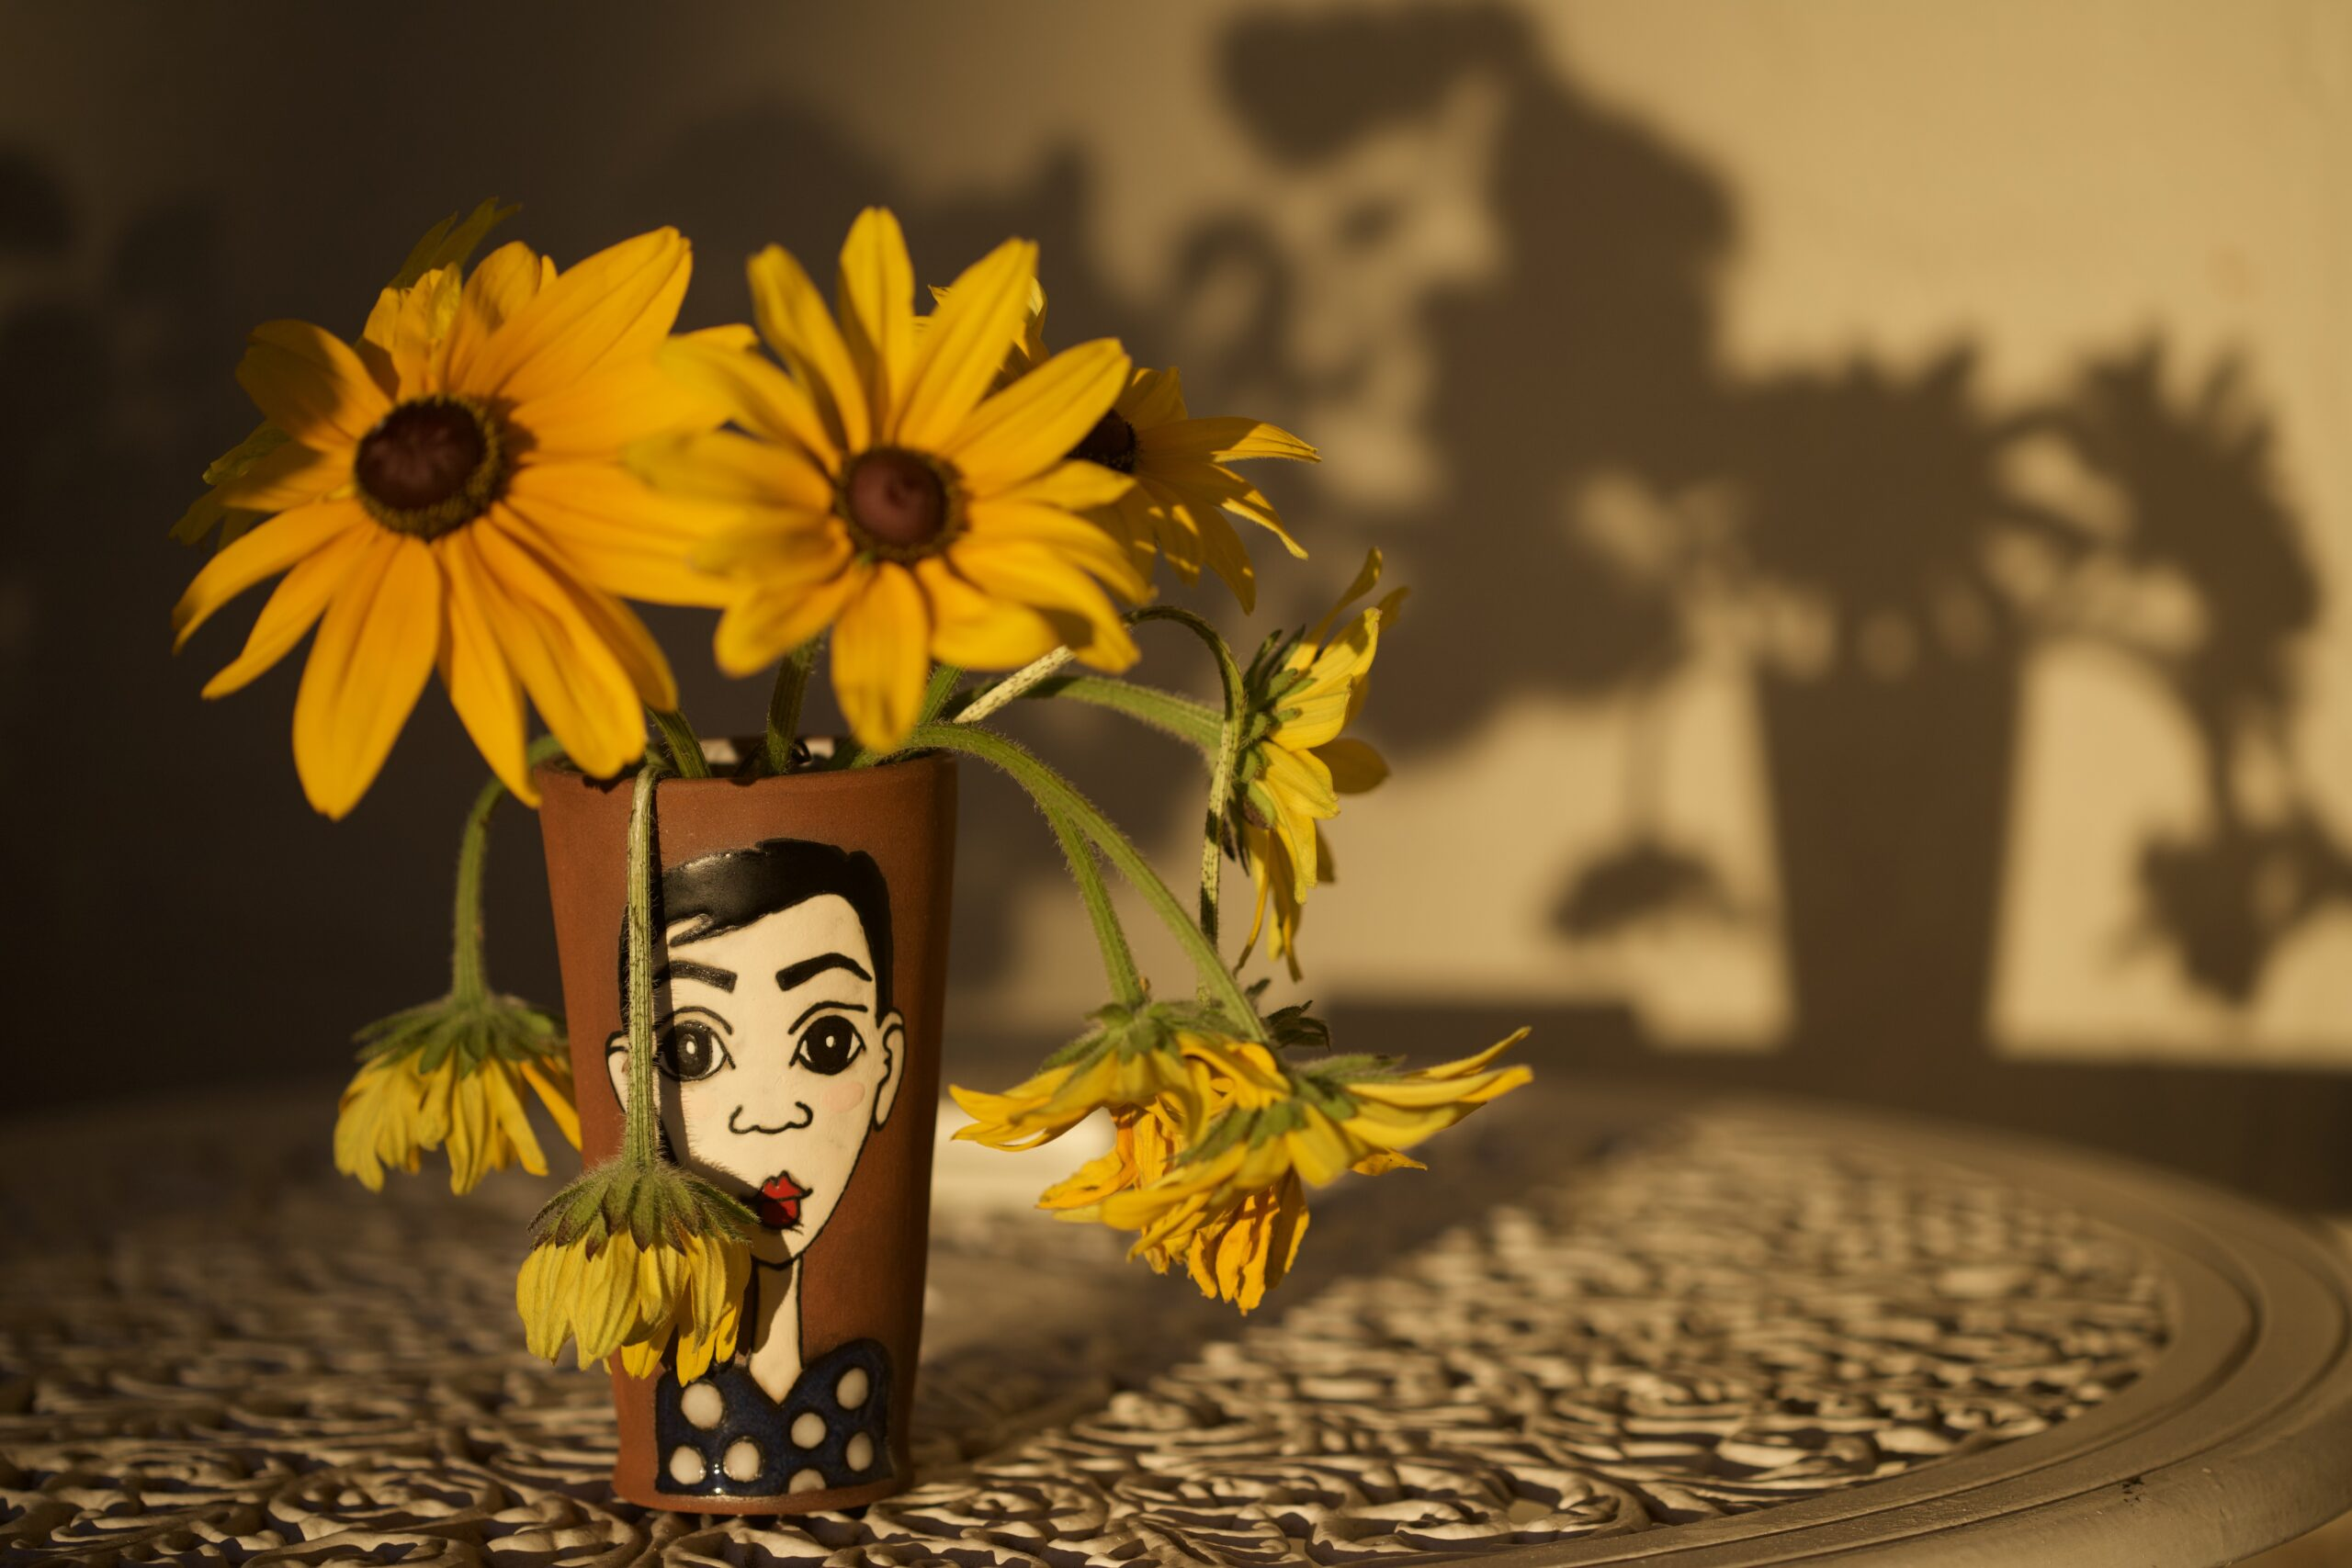 Sunflowers in painted vase casting a shadow on a yellow wall